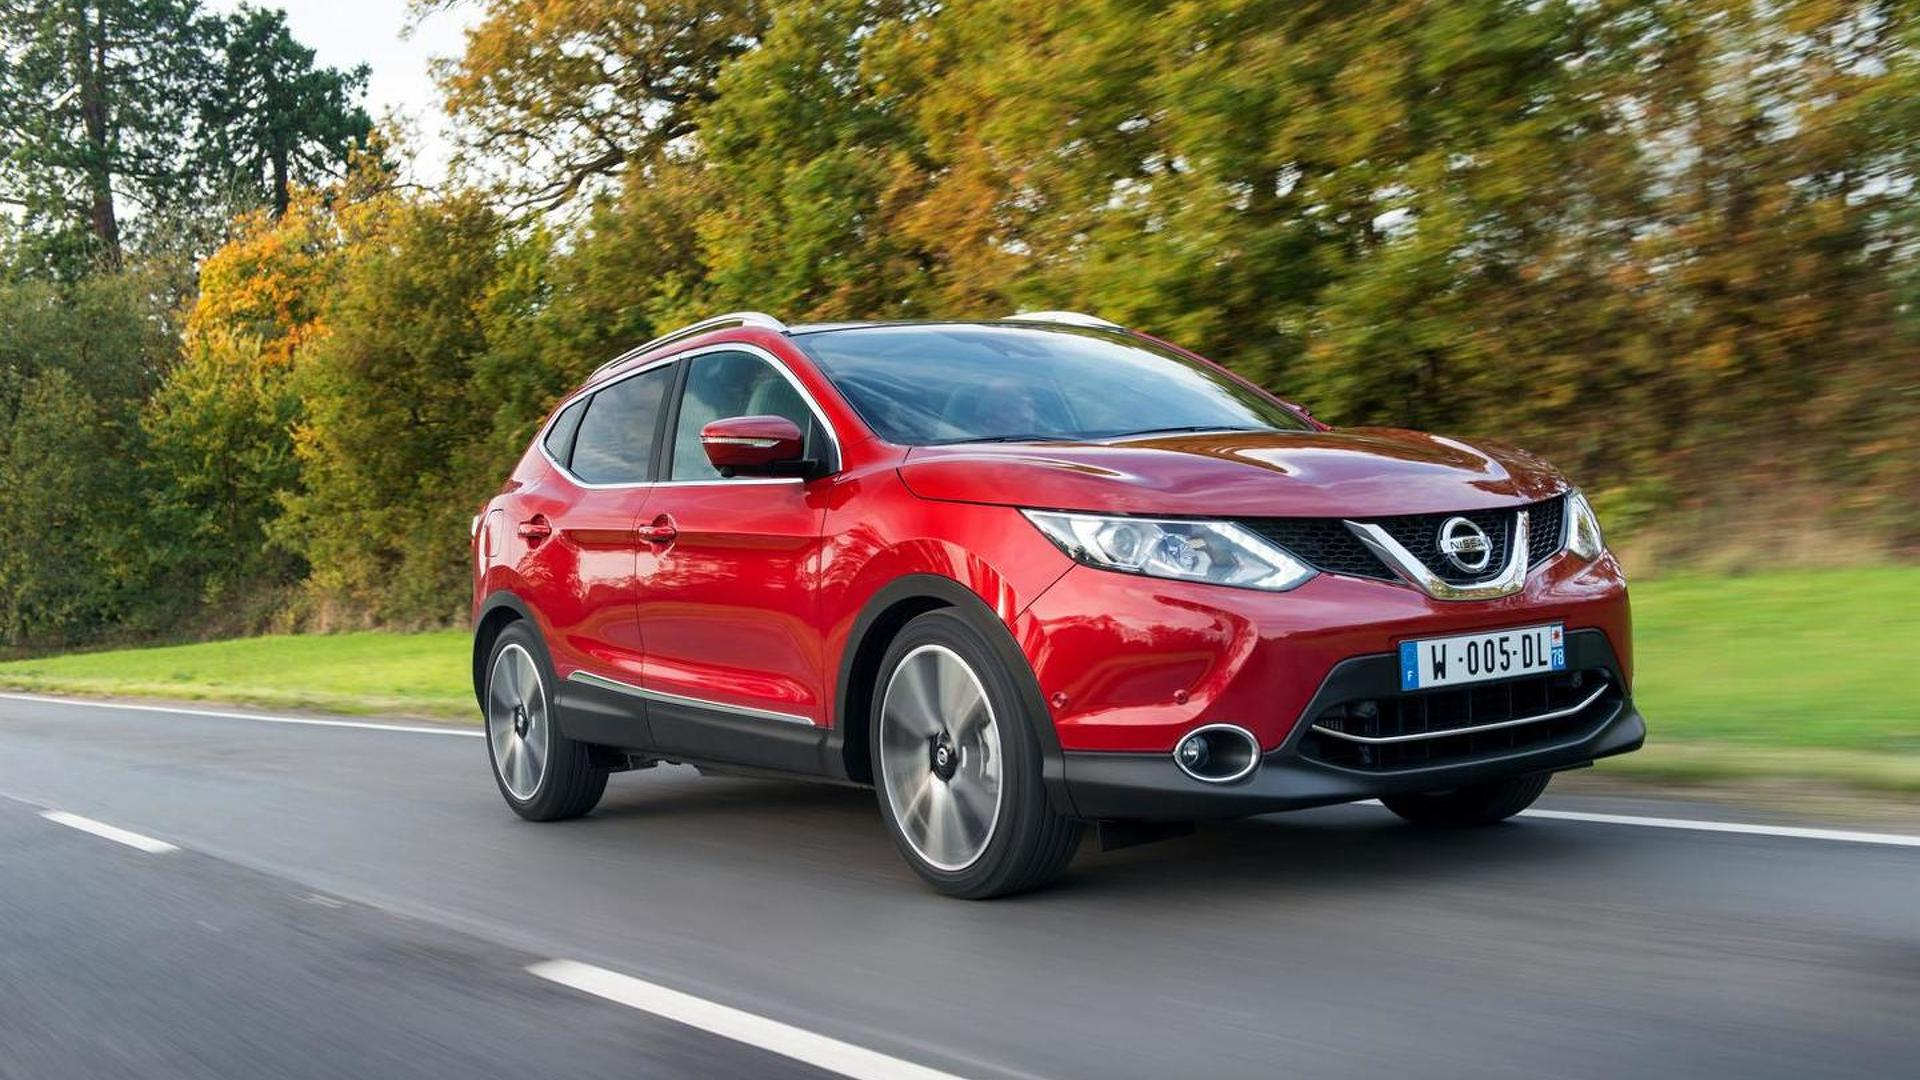 Nissan considering a sportier-looking Qashqai to rival the Range Rover Evoque - report